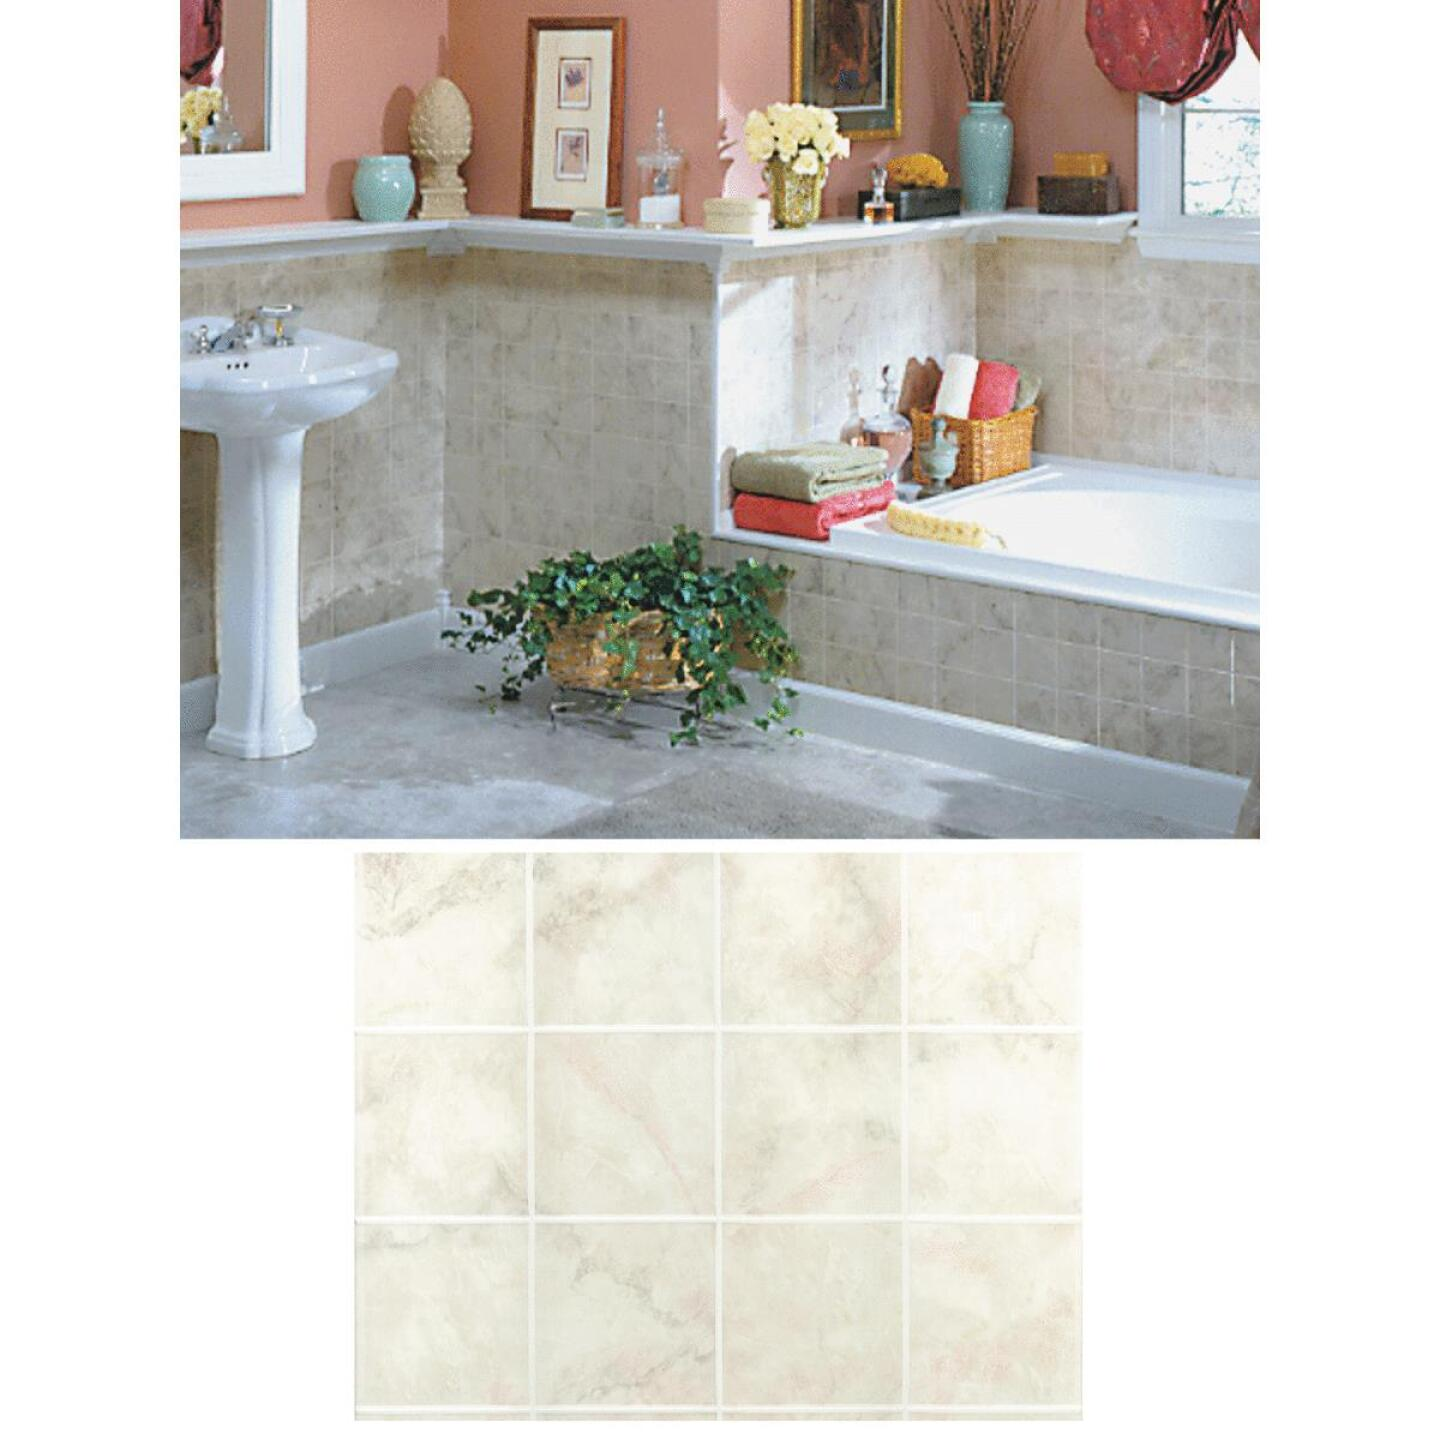 DPI AquaTile 4 Ft. x 8 Ft. x 1/8 In. Beige Milan Marble Tileboard Wall Paneling Image 1